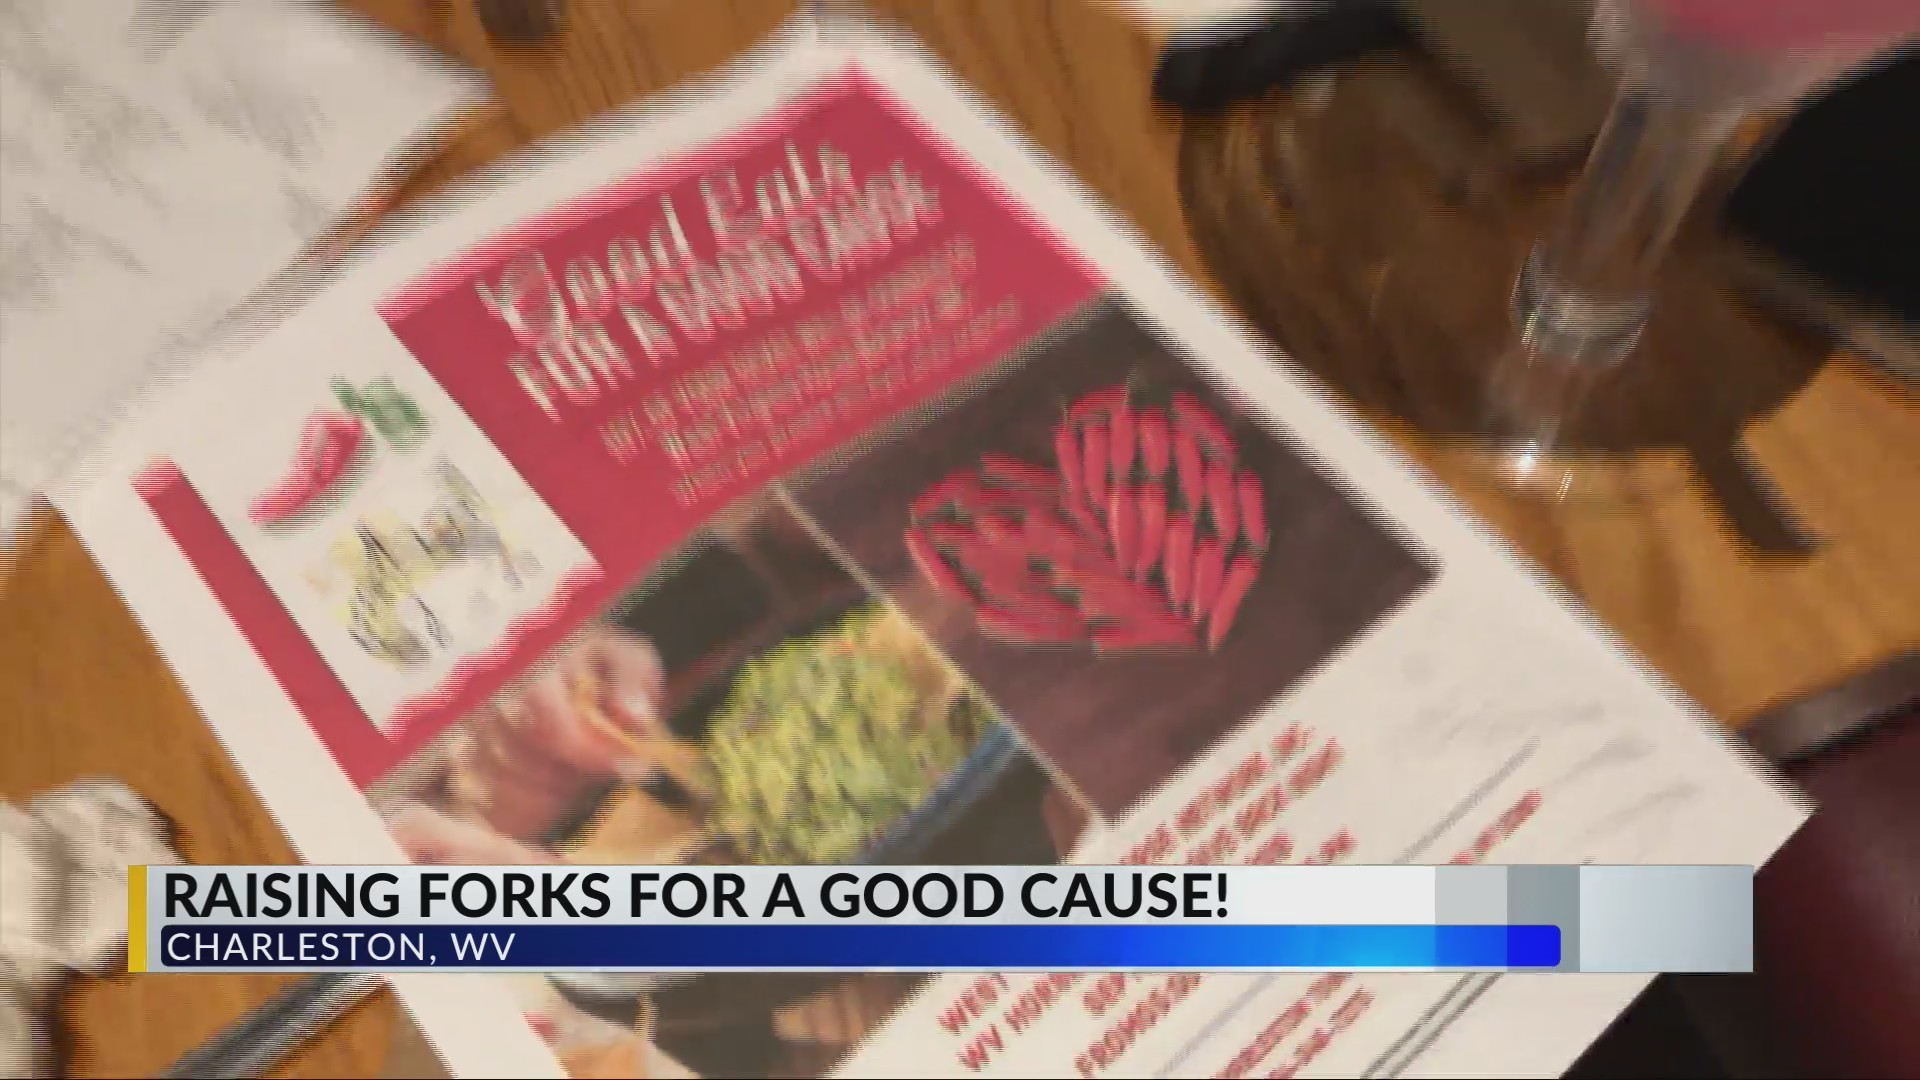 Raising Forks for a good cause, the West Virginia Horse Network